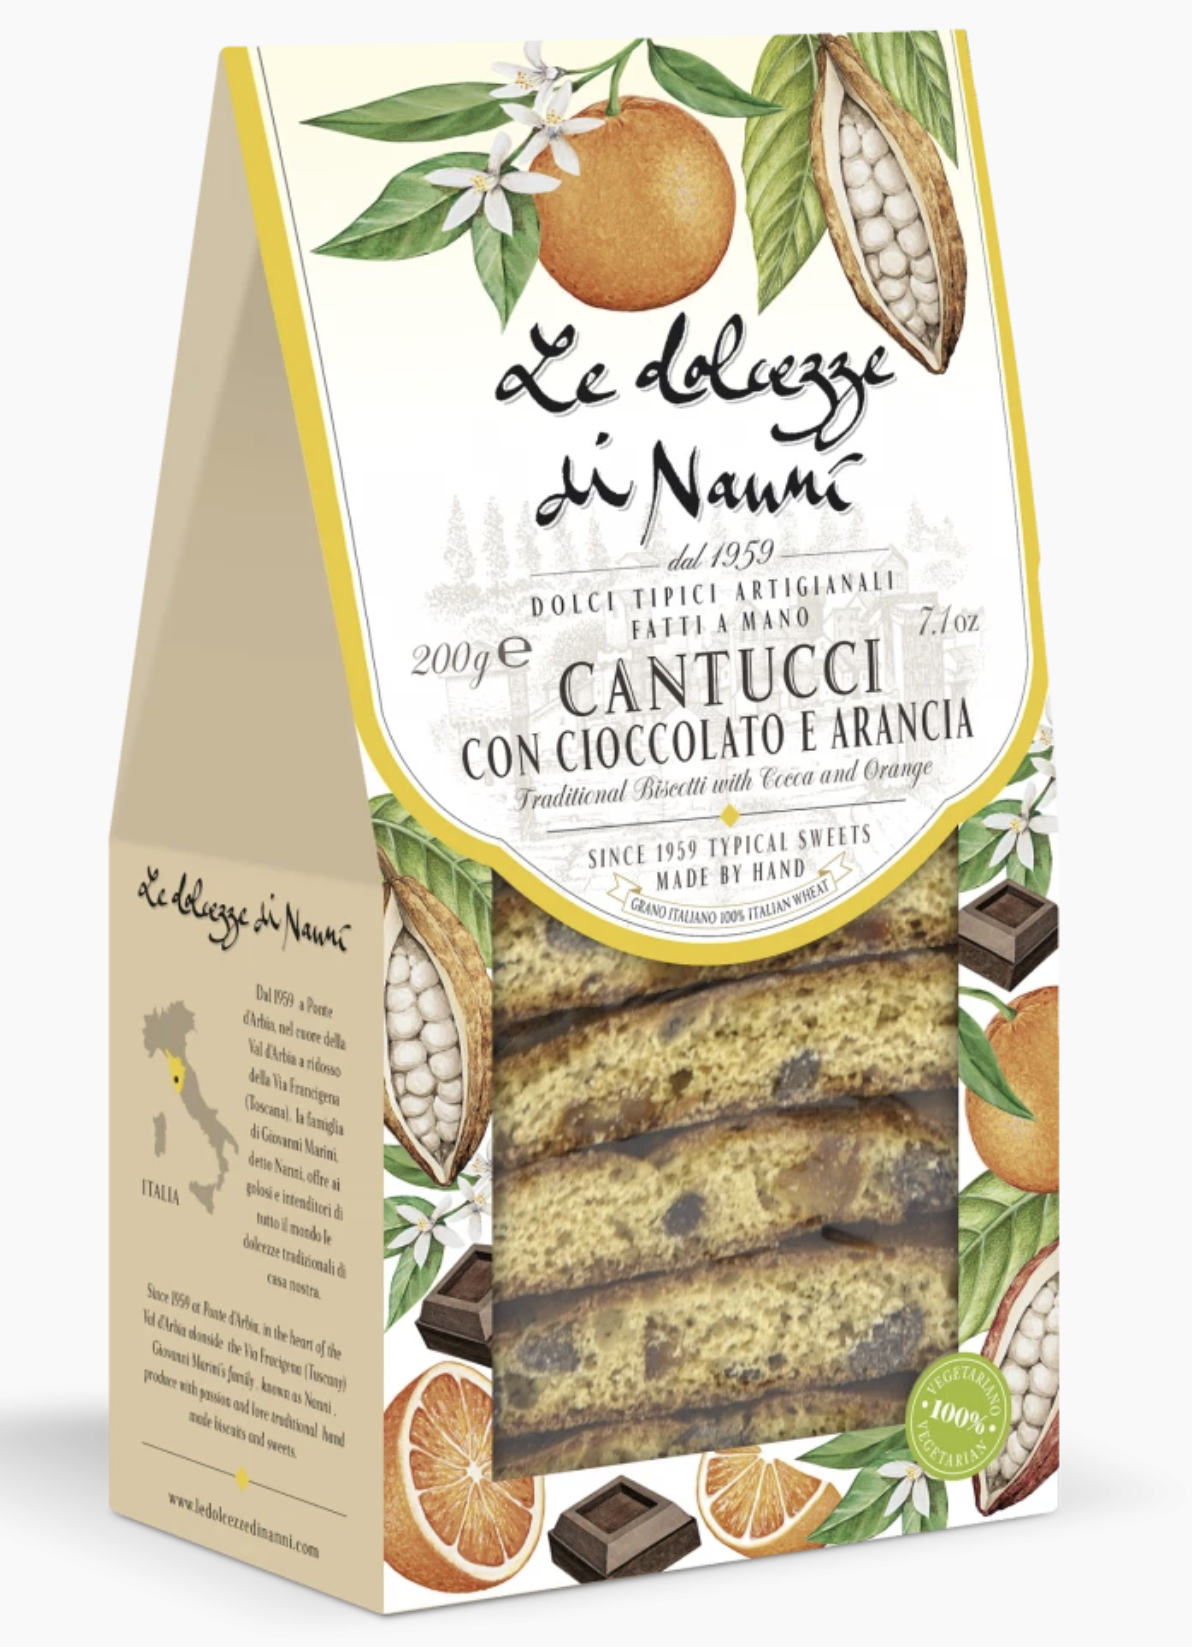 Traditional Biscotti Cantucci with Cocoa and Orange by Dolcezze di Nanni, Tuscany